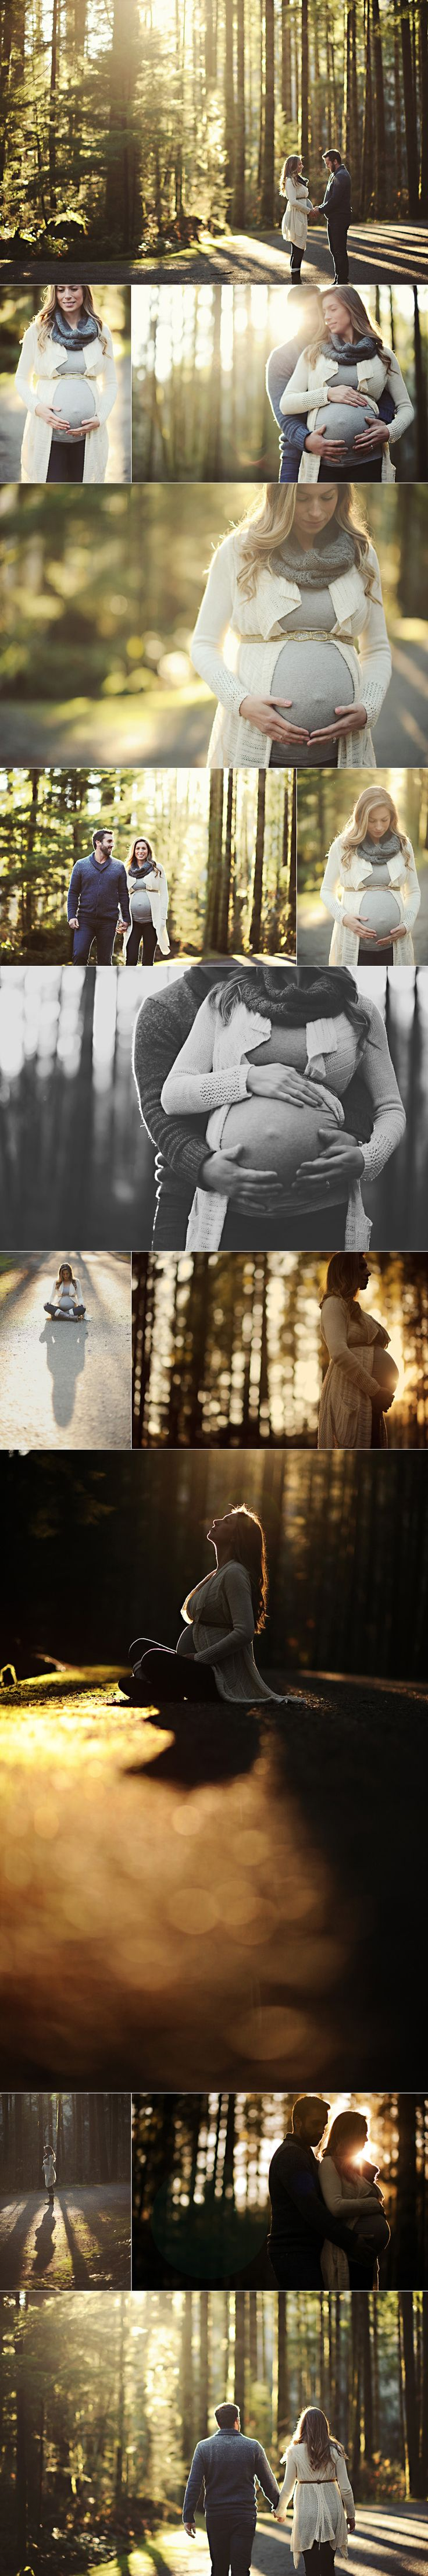 Absolutely gorgeous maternity session by Erin Wallis Photography.